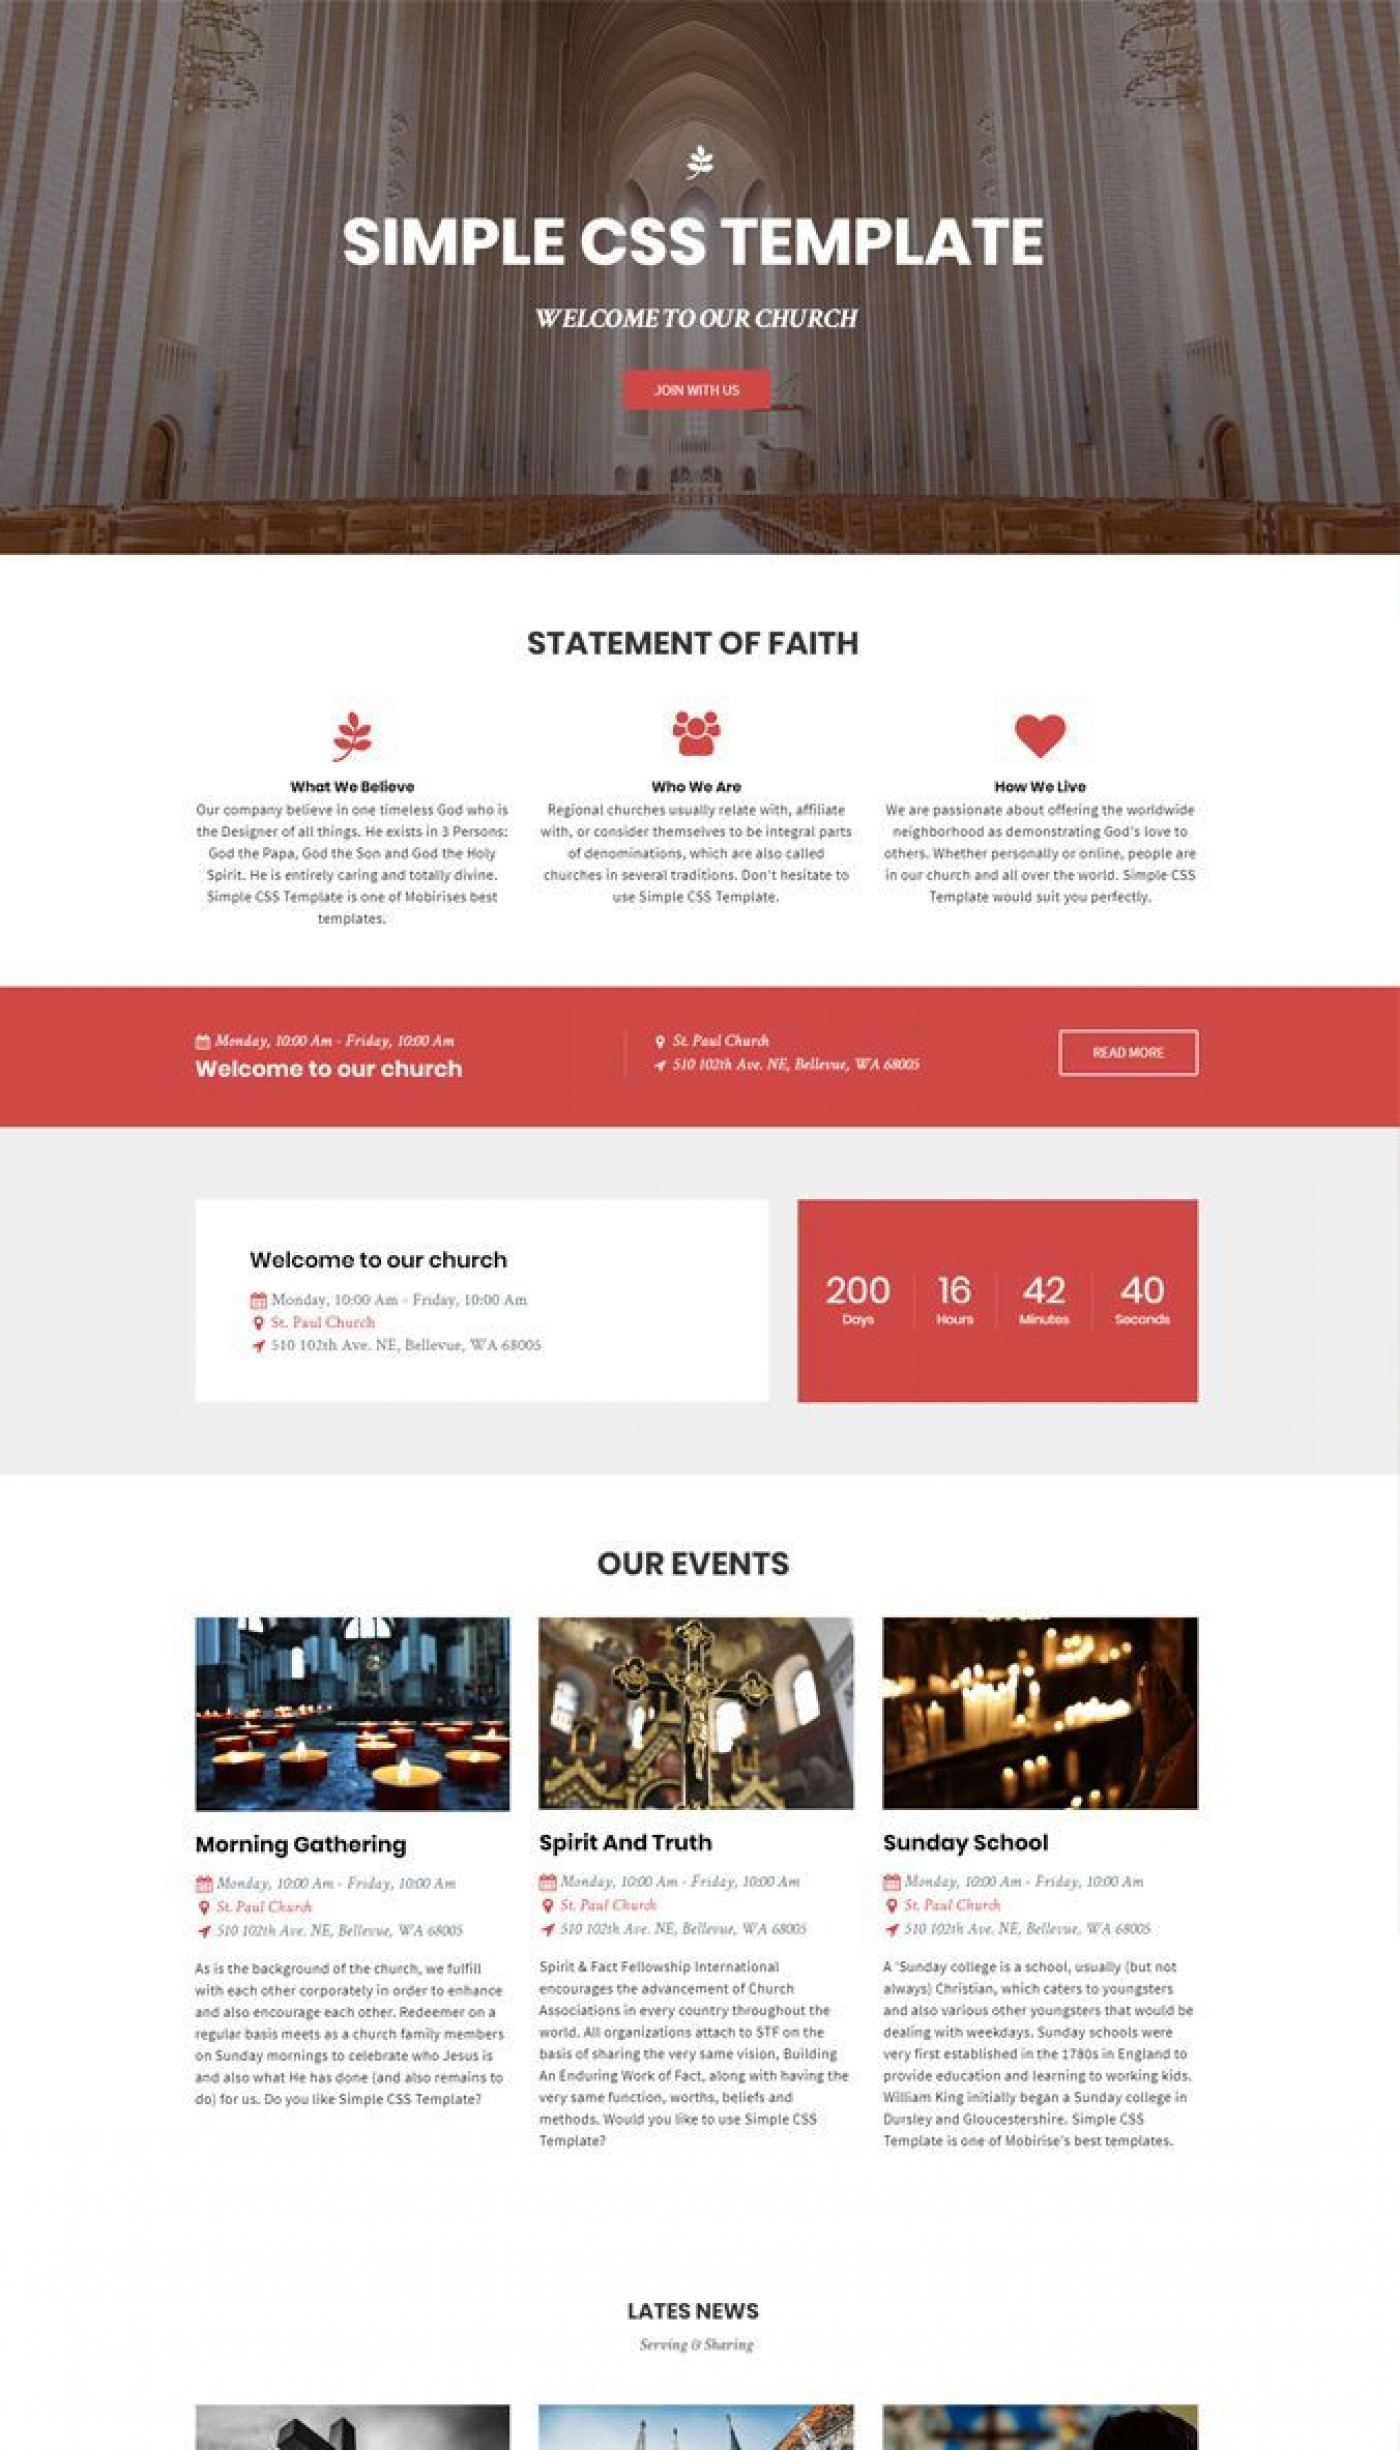 002 Incredible Free Simple Web Page Template Example  Html One Website Download With Cs1400